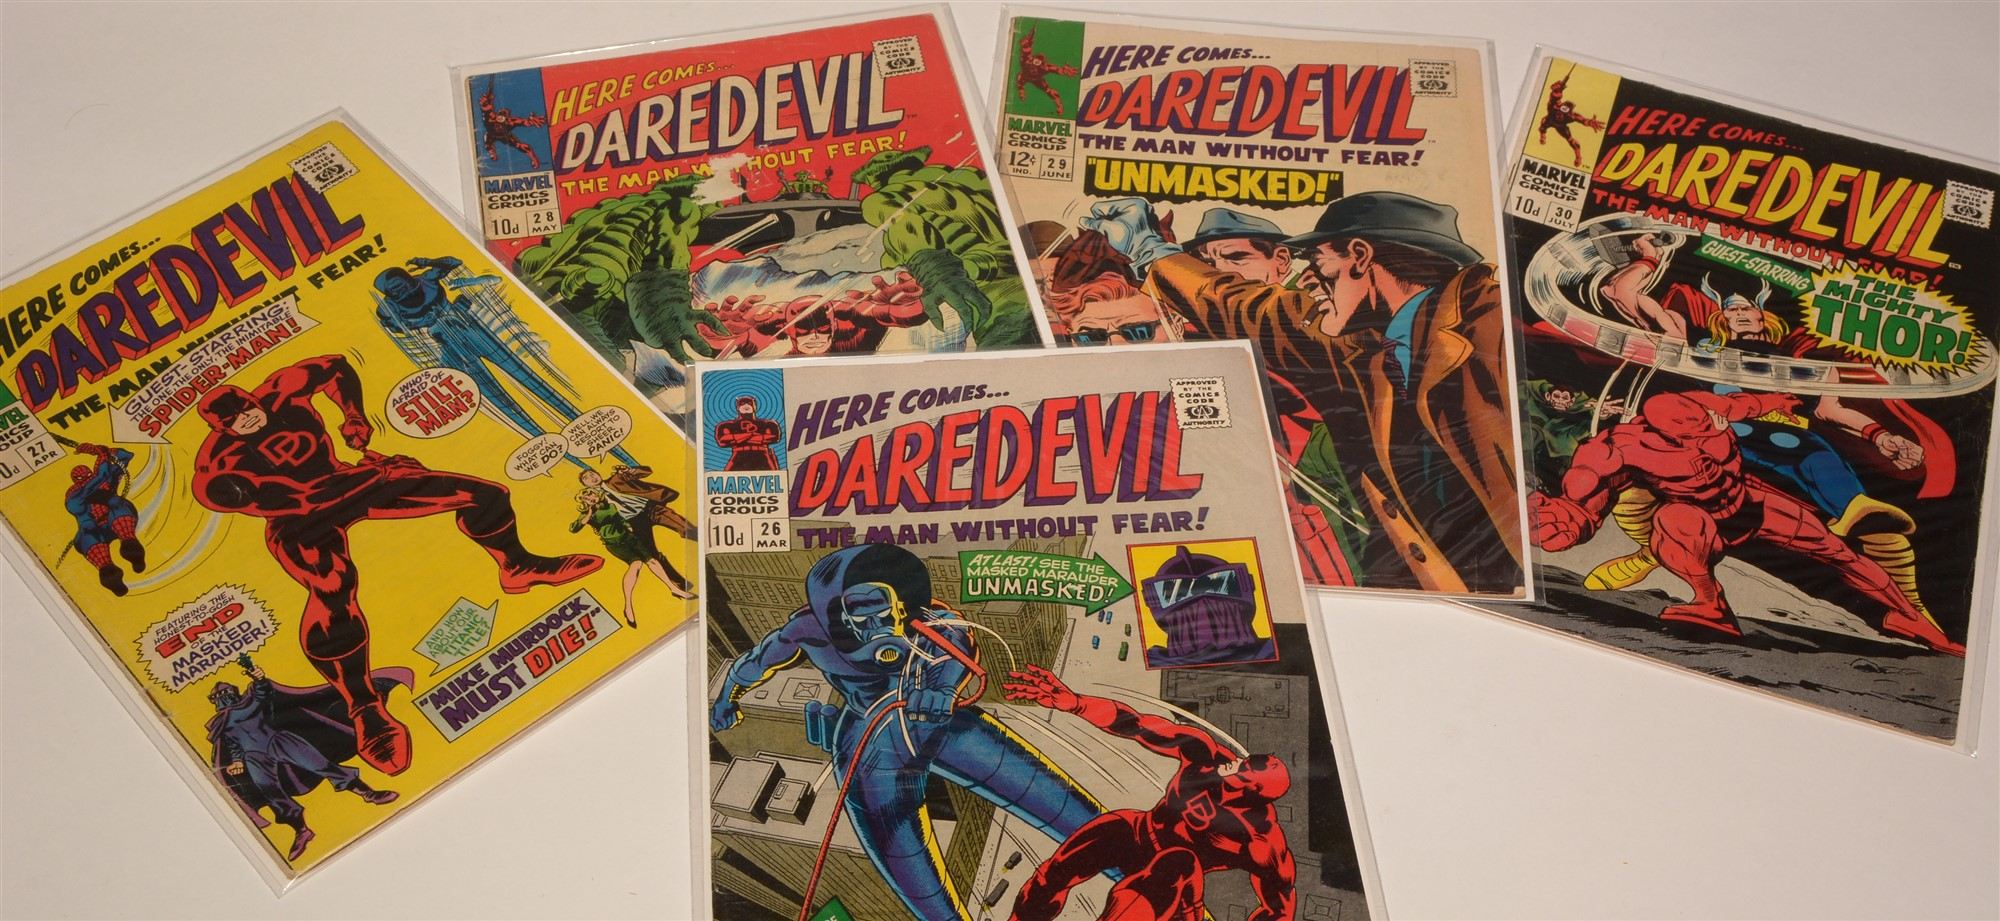 Daredevil No's. 9, 10 11 & 26-30 inclusive / Daredevil King-Size and Giant-Size Comics; and 64-Page - Image 2 of 3